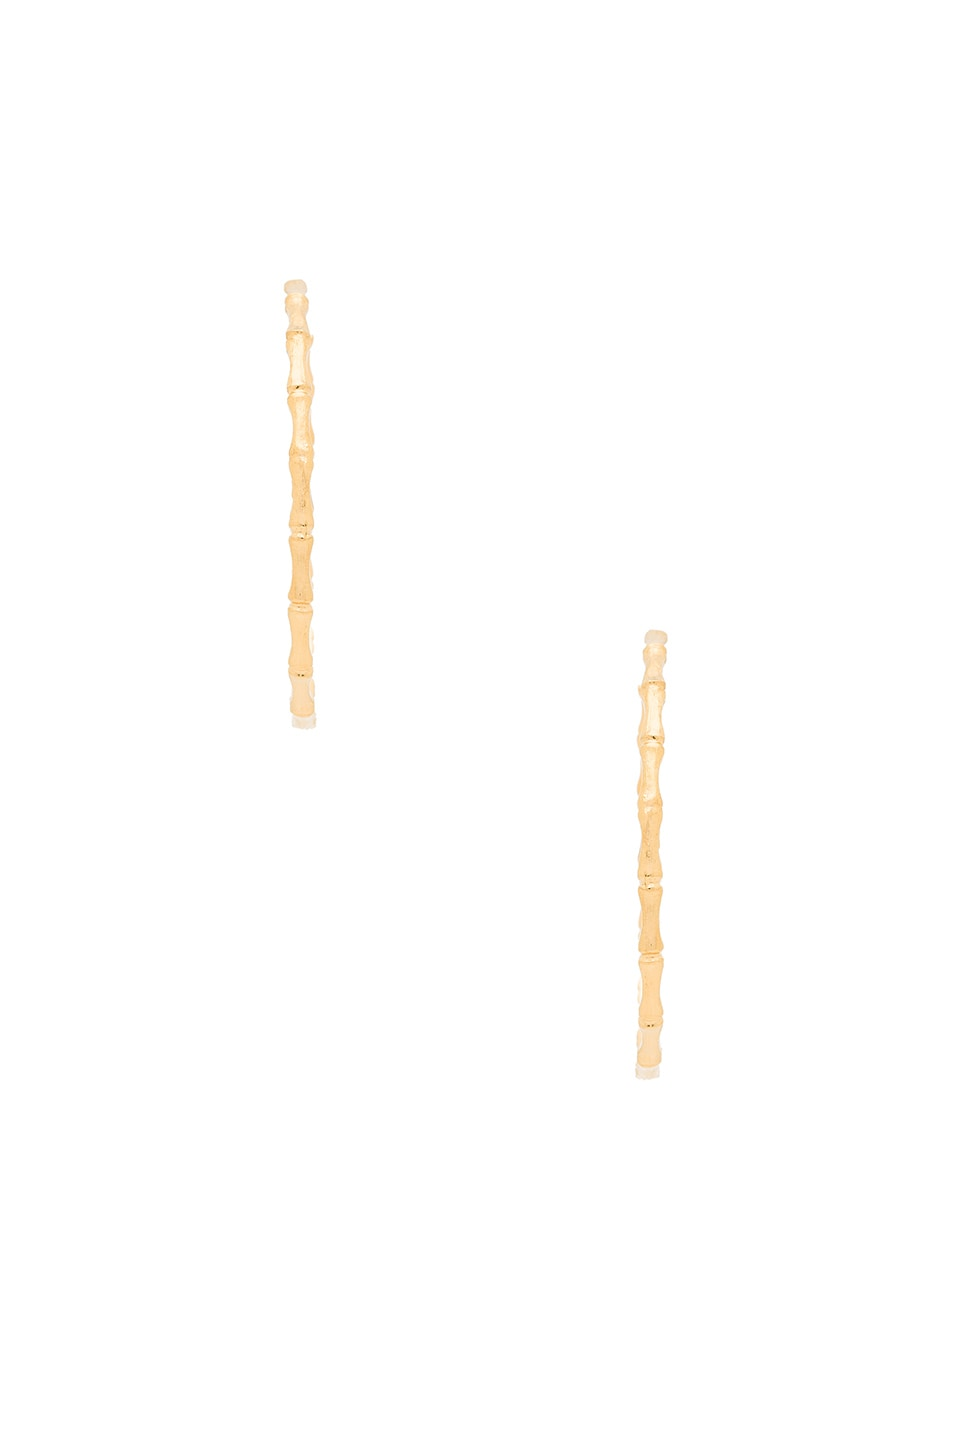 Bamboo Hoop Earrings by Natalie B Jewelry